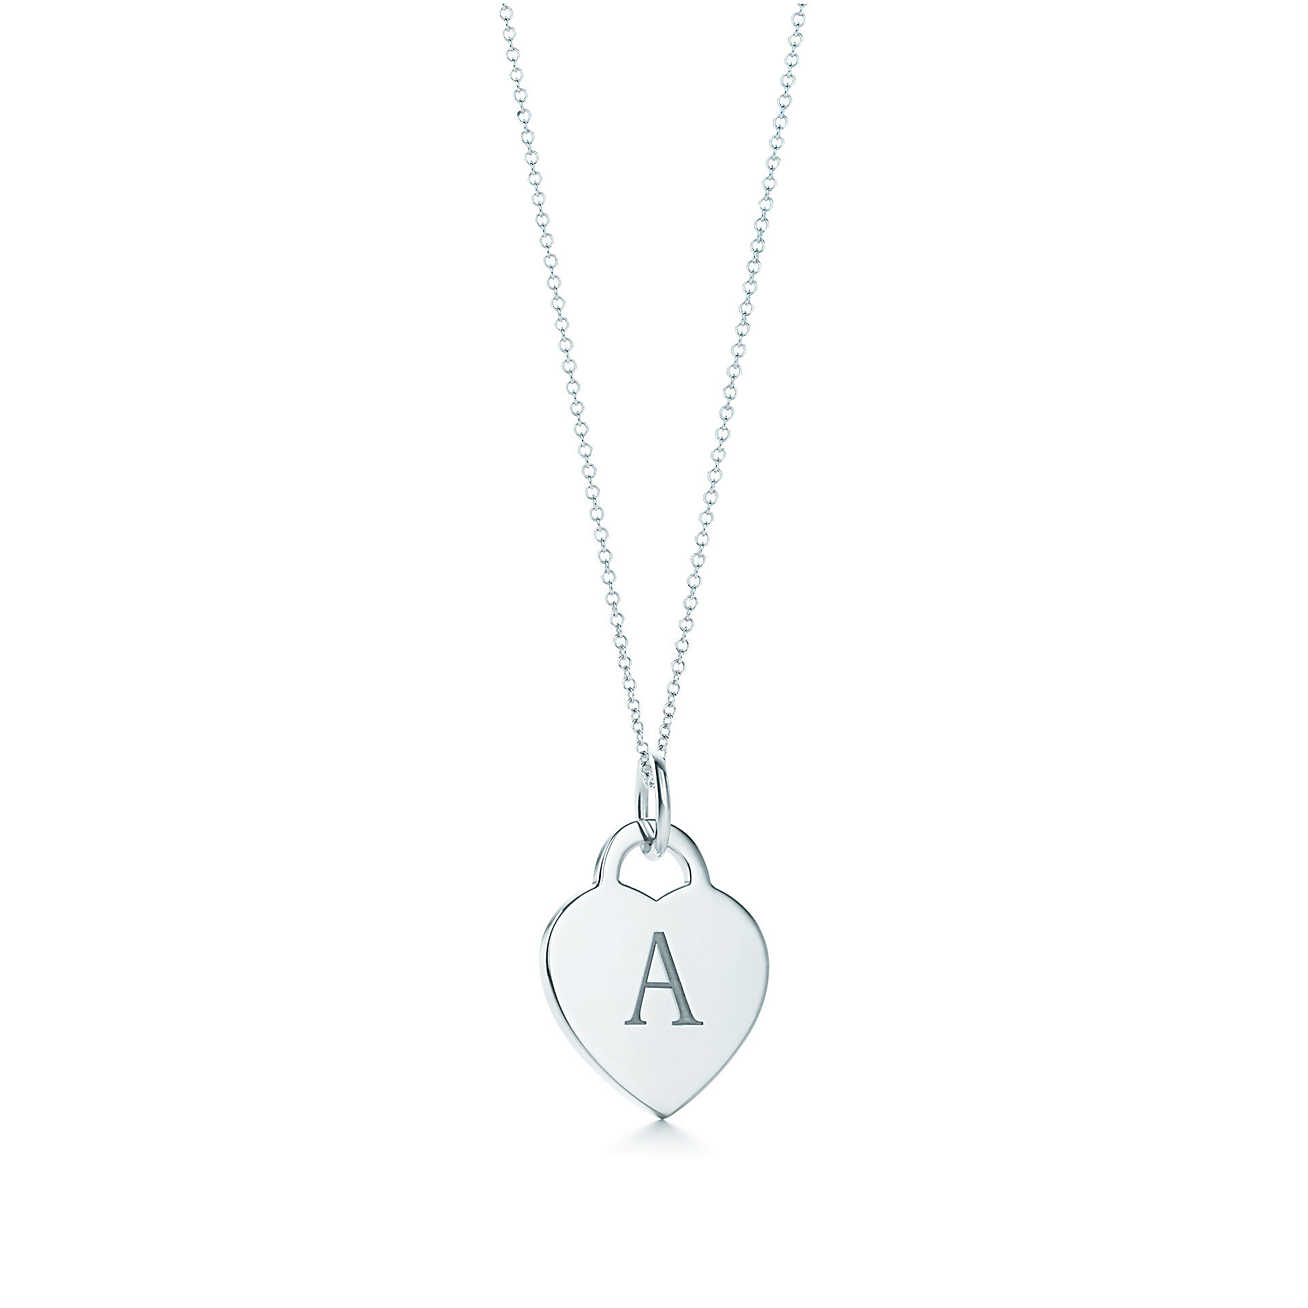 30212c4de1e 20 Best-Looking Initial Necklaces You Will Not Want to Take Off | JJ